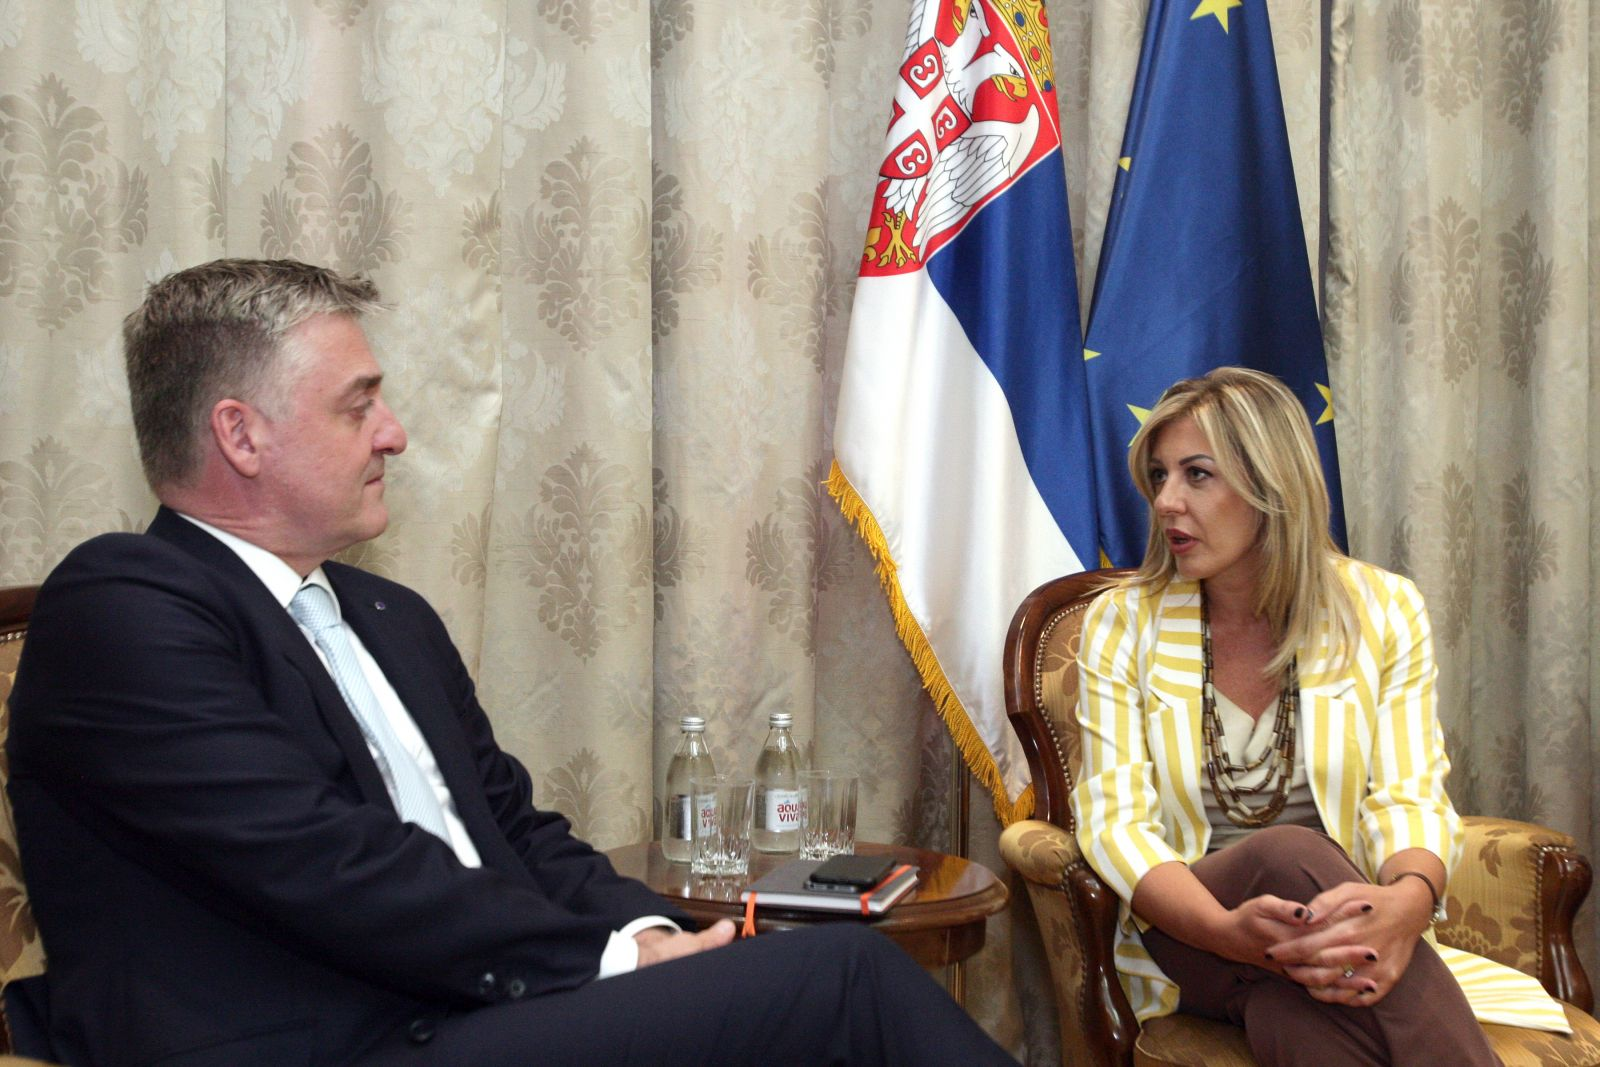 J. Joksimović and Flessenkemper: Council of Europe's expert recommendations important to Serbia